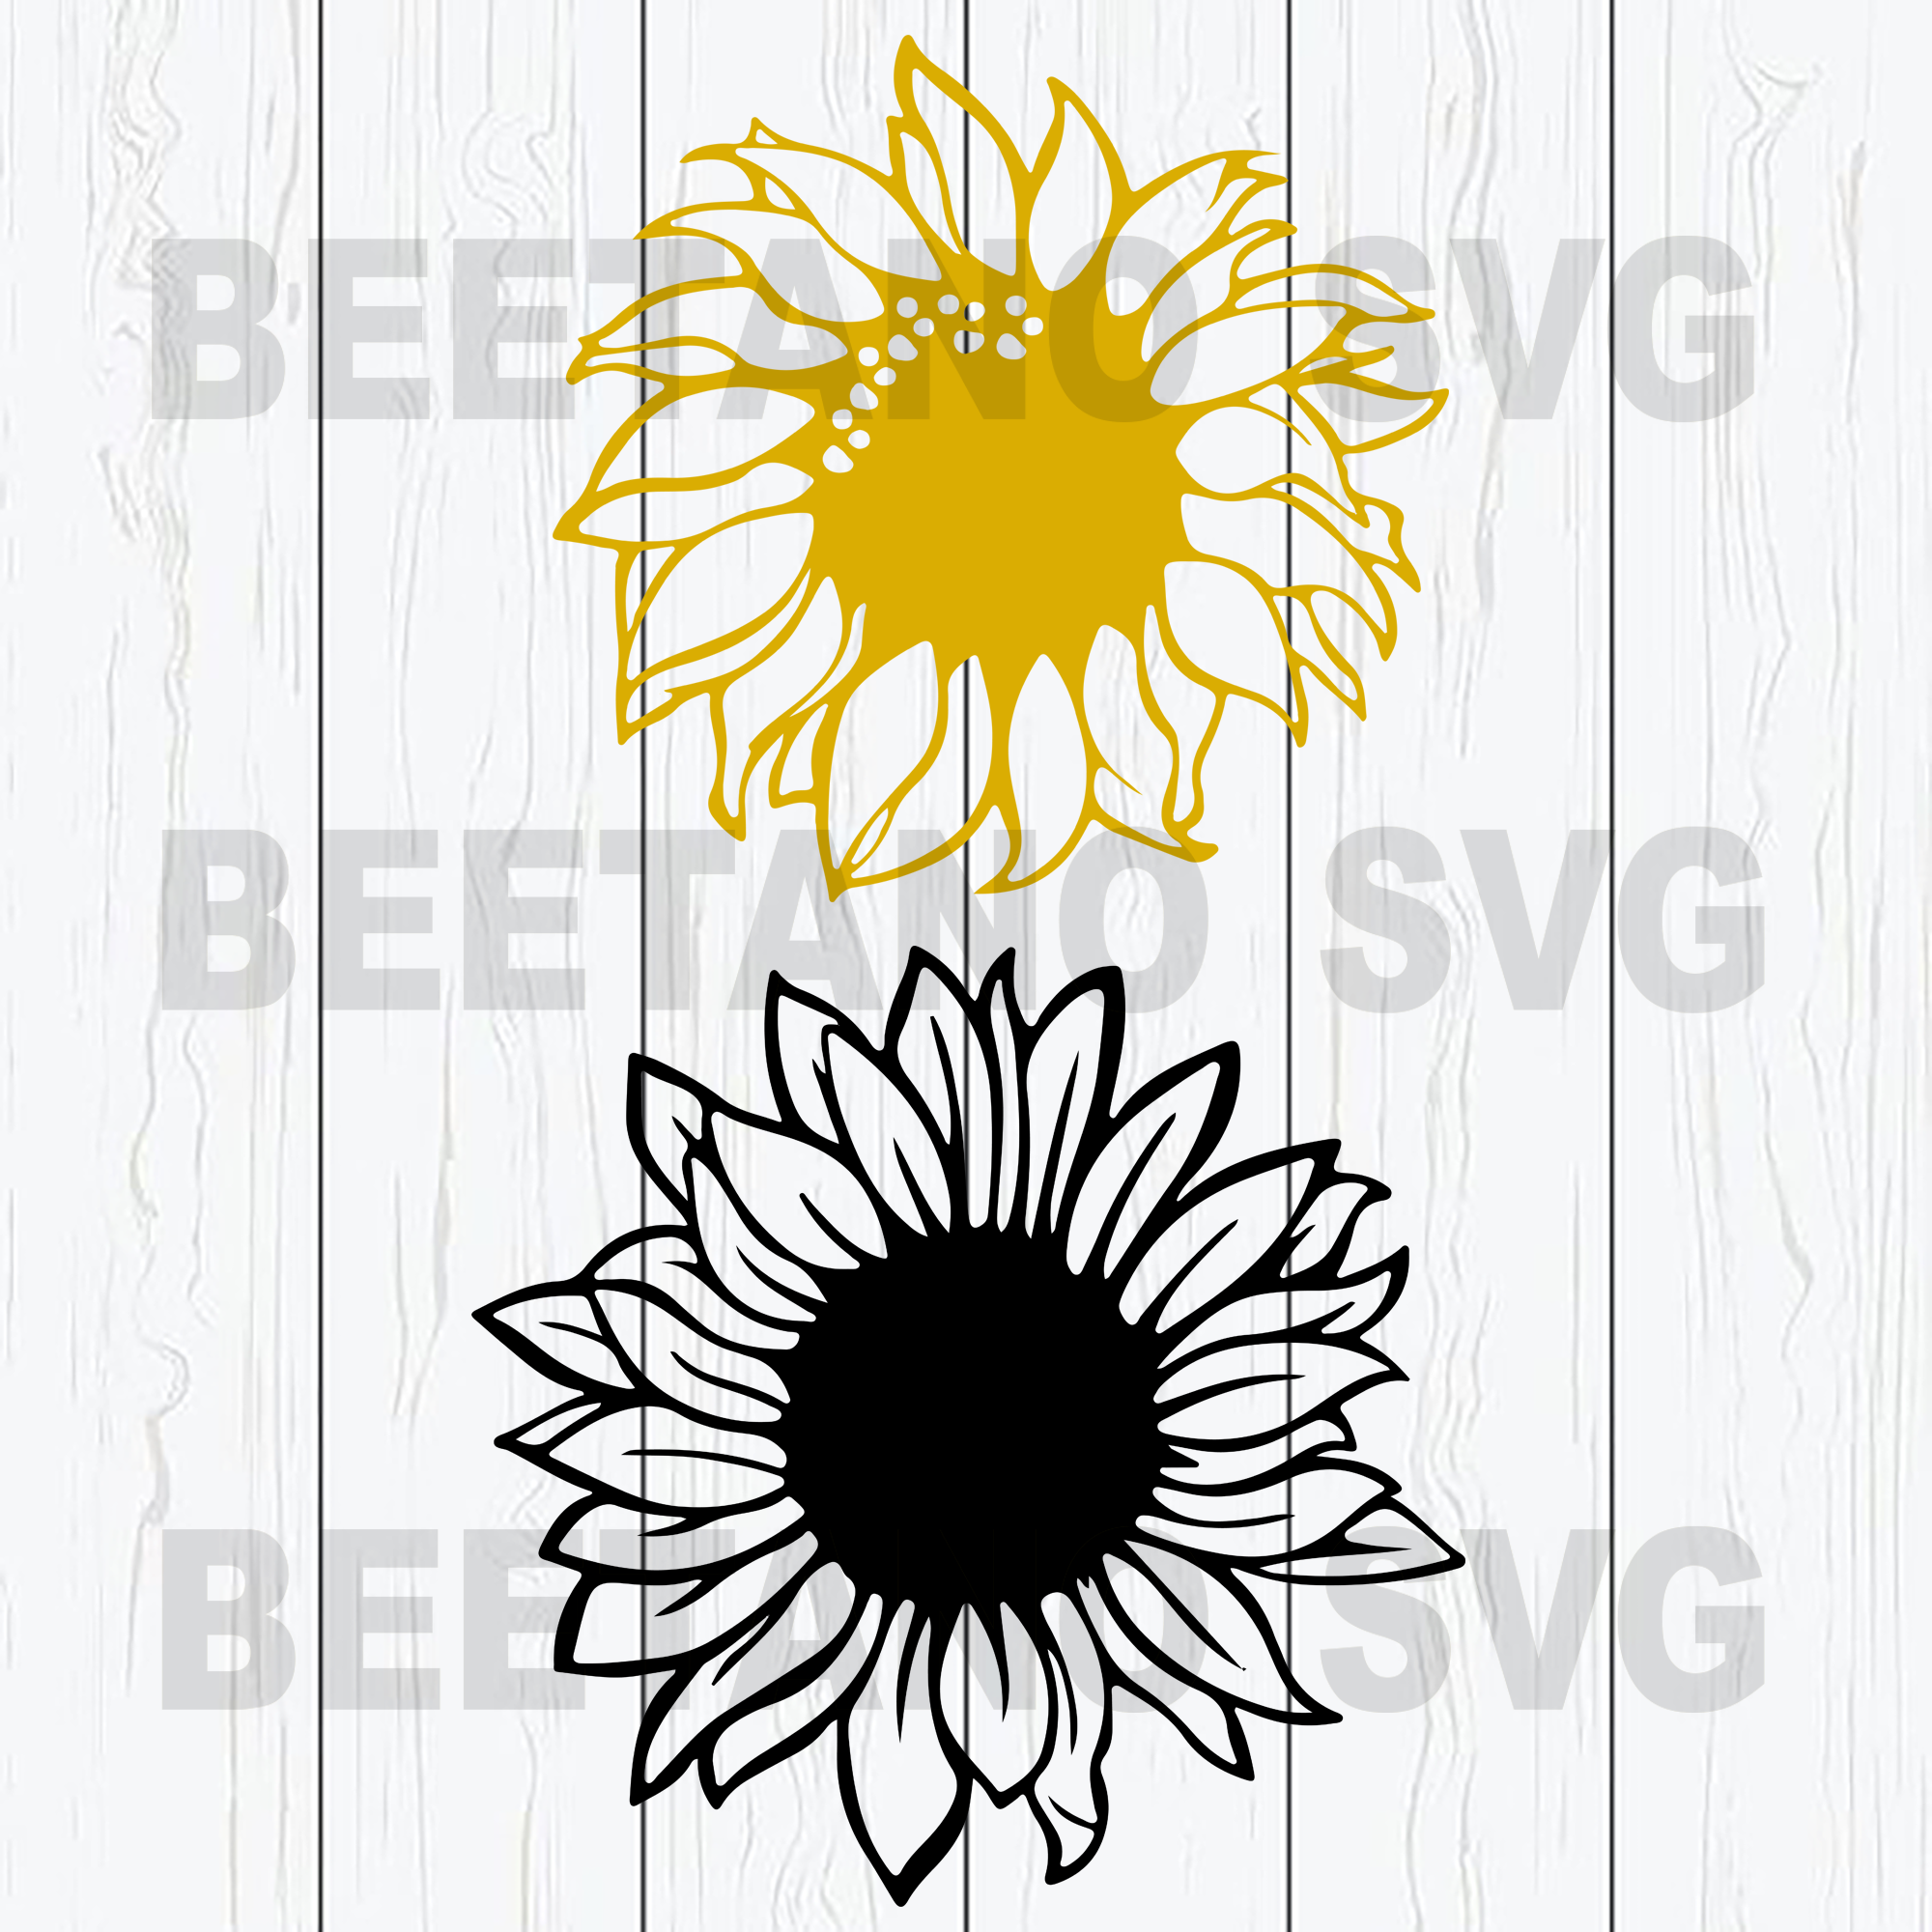 Sunflowers Svg Bundle, Sunflower Vector, Sunflowers Clipart, Sunflowers Bundle Cutting Files For Cricut, SVG, DXF, EPS, PNG Instant Download